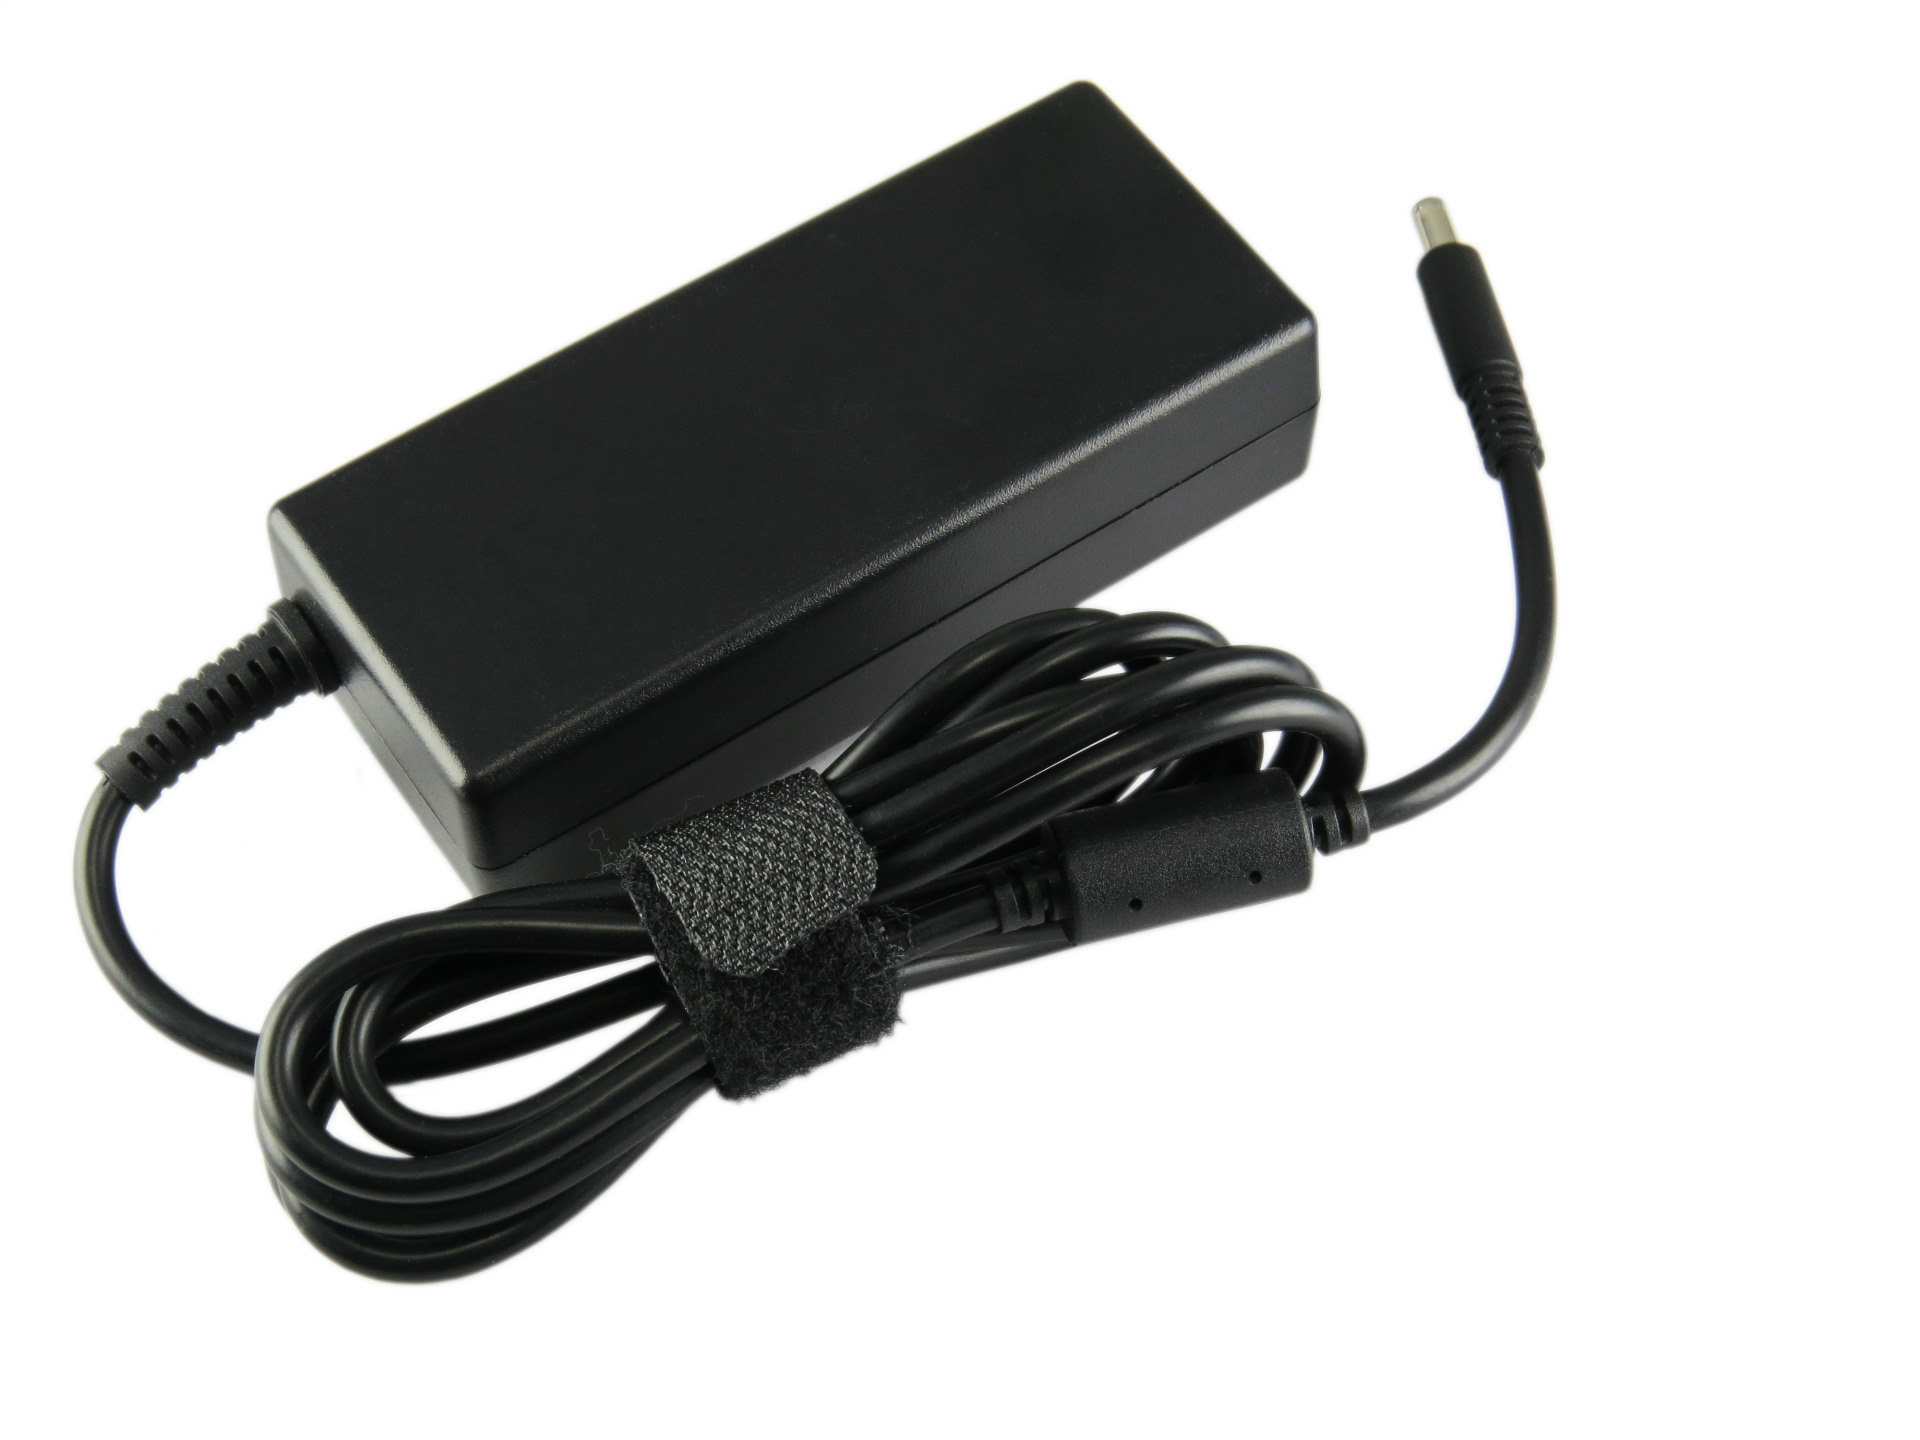 19.5V 3.42A 65W Laptop Ac Power Adapter Charger For Dell Xps 13 12 Ultrabook Small Round Pin Factory Direct High Quality